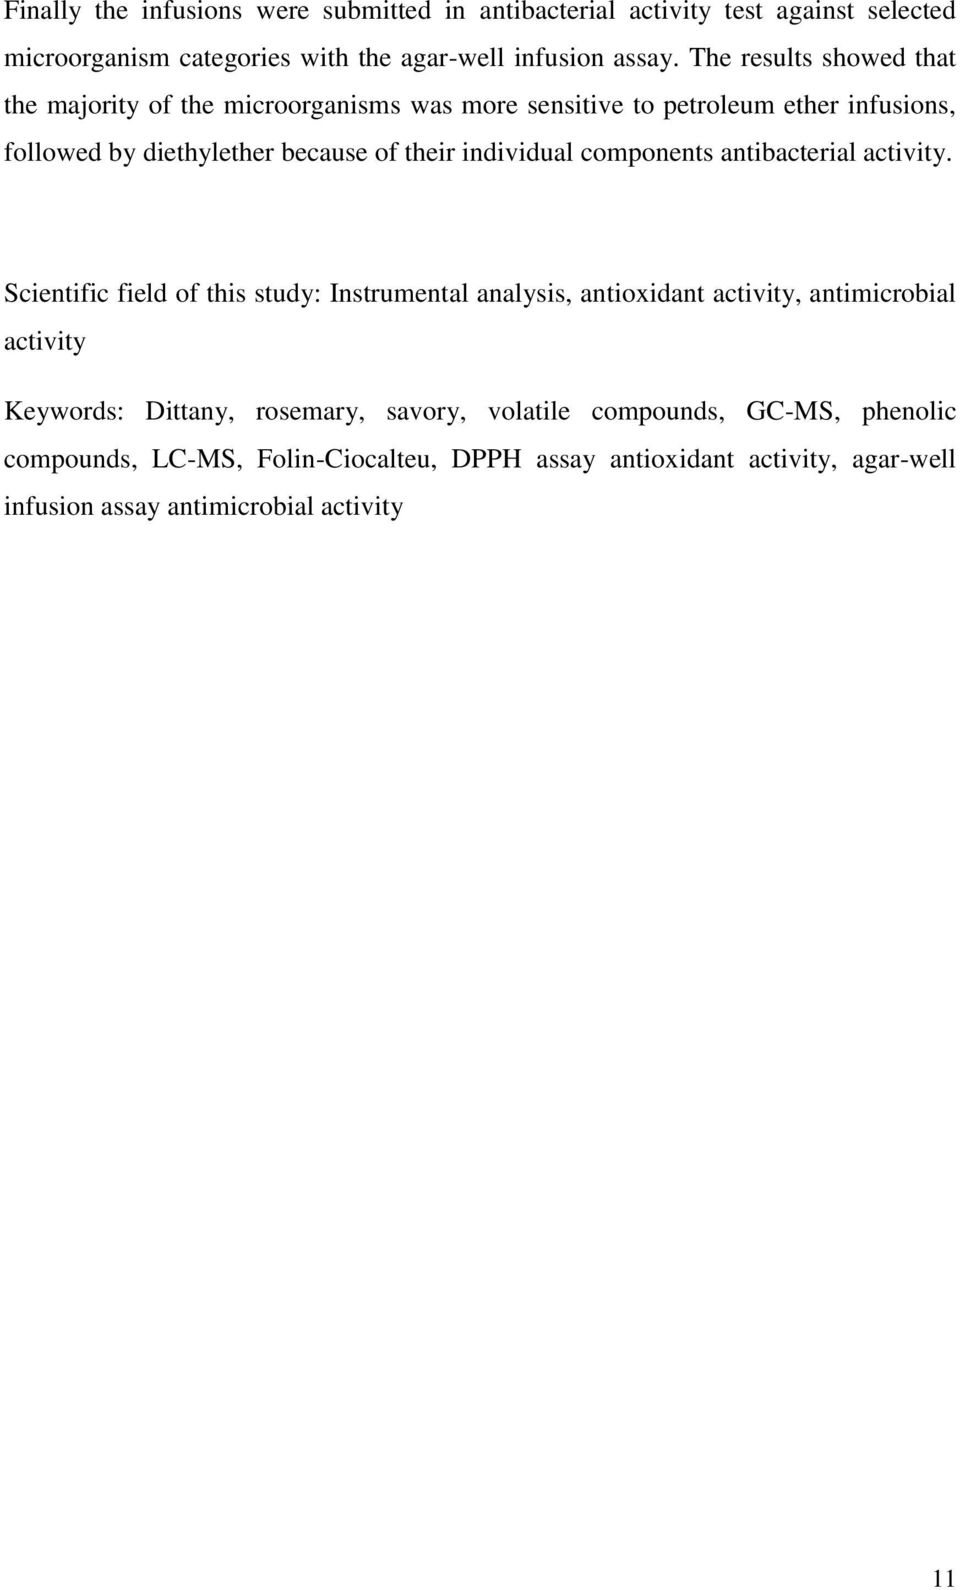 individual components antibacterial activity.